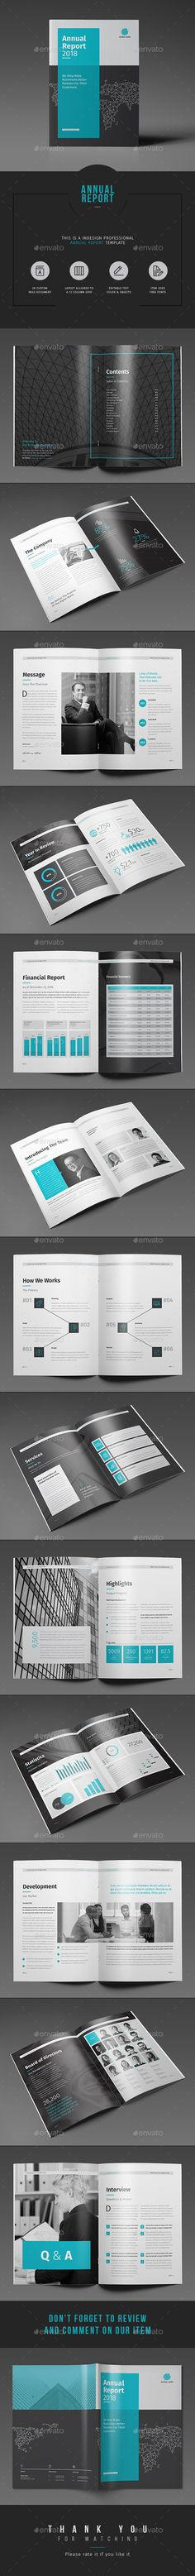 15 best Report Template images on Pinterest Page layout, Editorial - accident report template